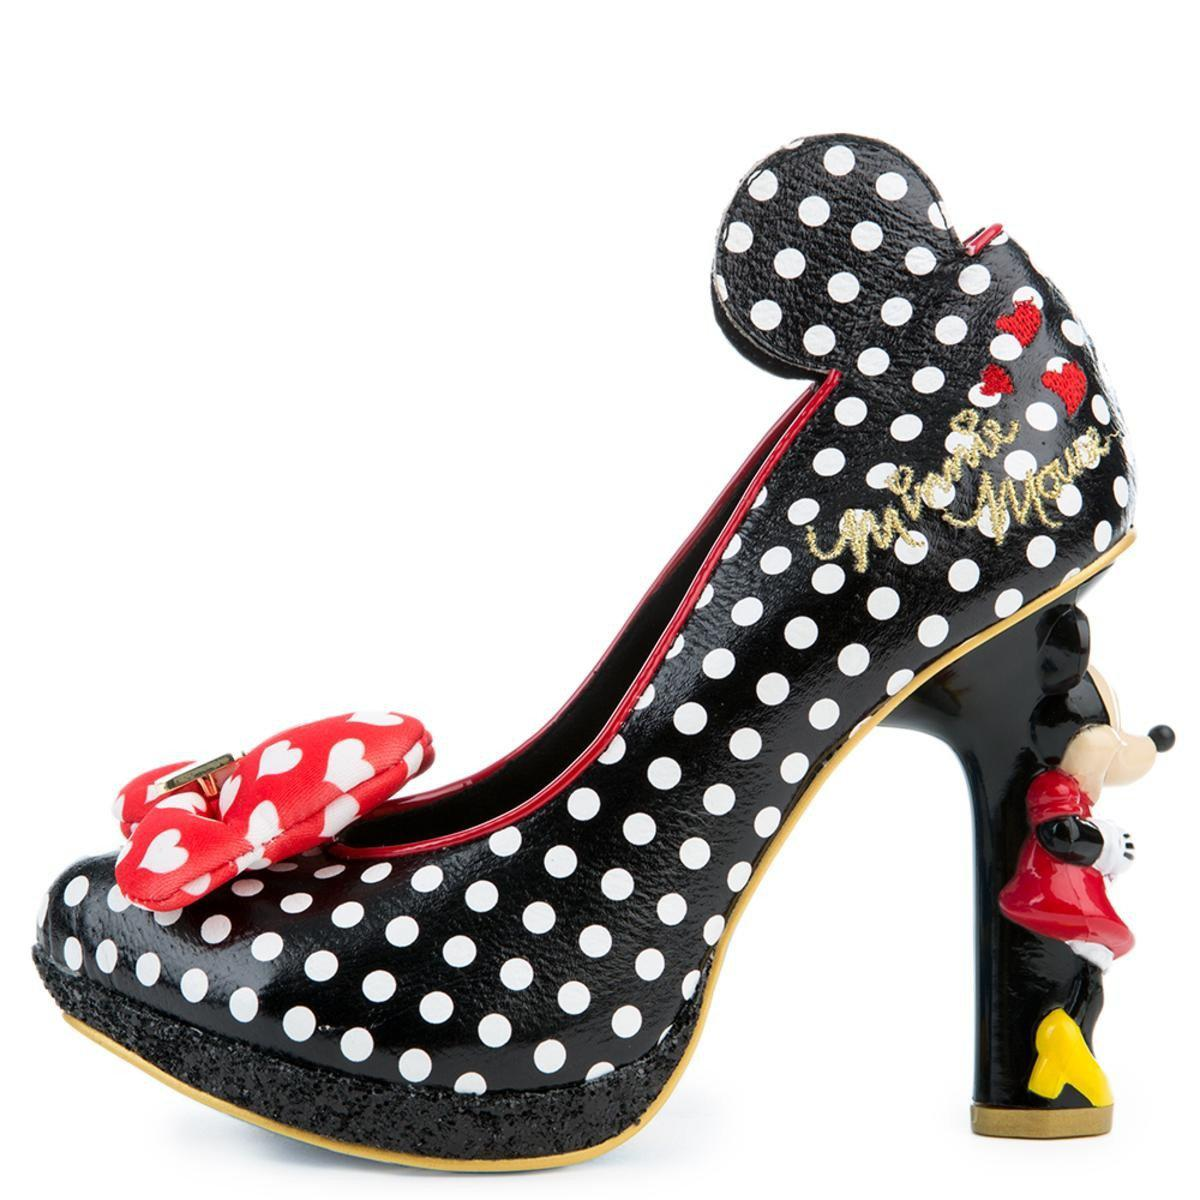 49ceb026e24 Women's Mickey Mouse & Friends Collection Oh My! Black High Heel